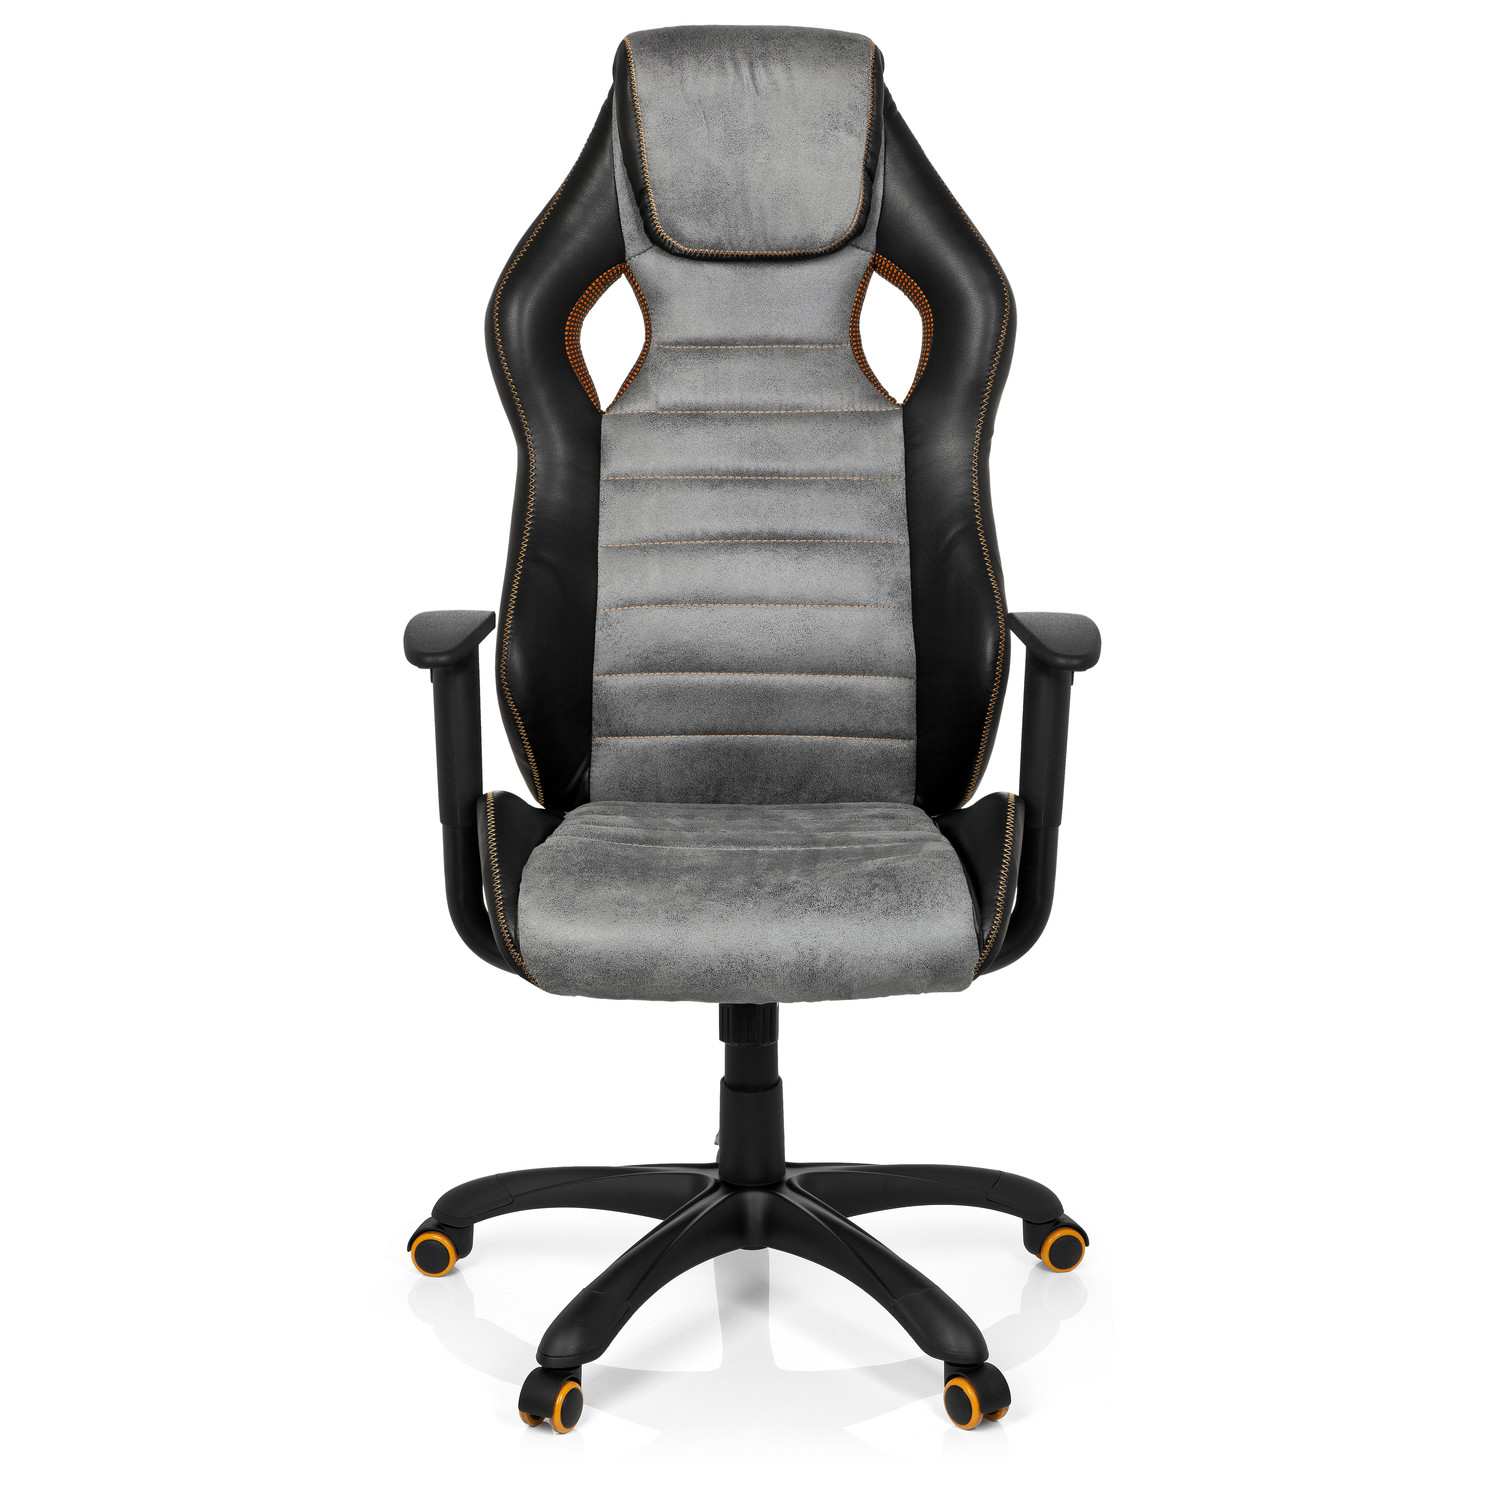 Silla de oficina gaming dakar vintage dise o exclusivo for Rebajas sillas gaming